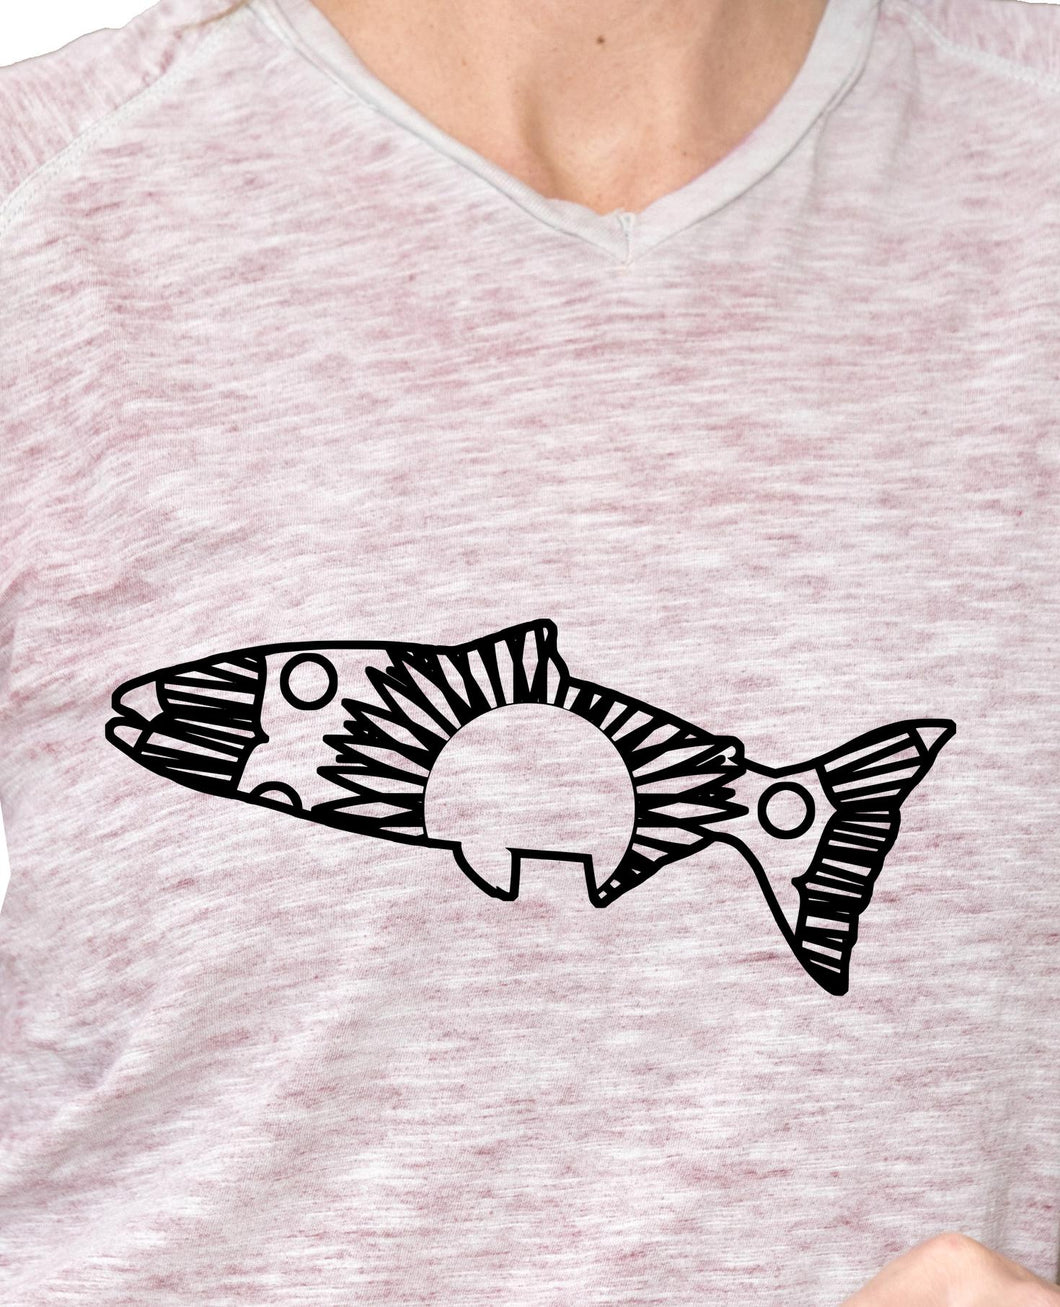 King Salmon Hot Summer Mandala Designs